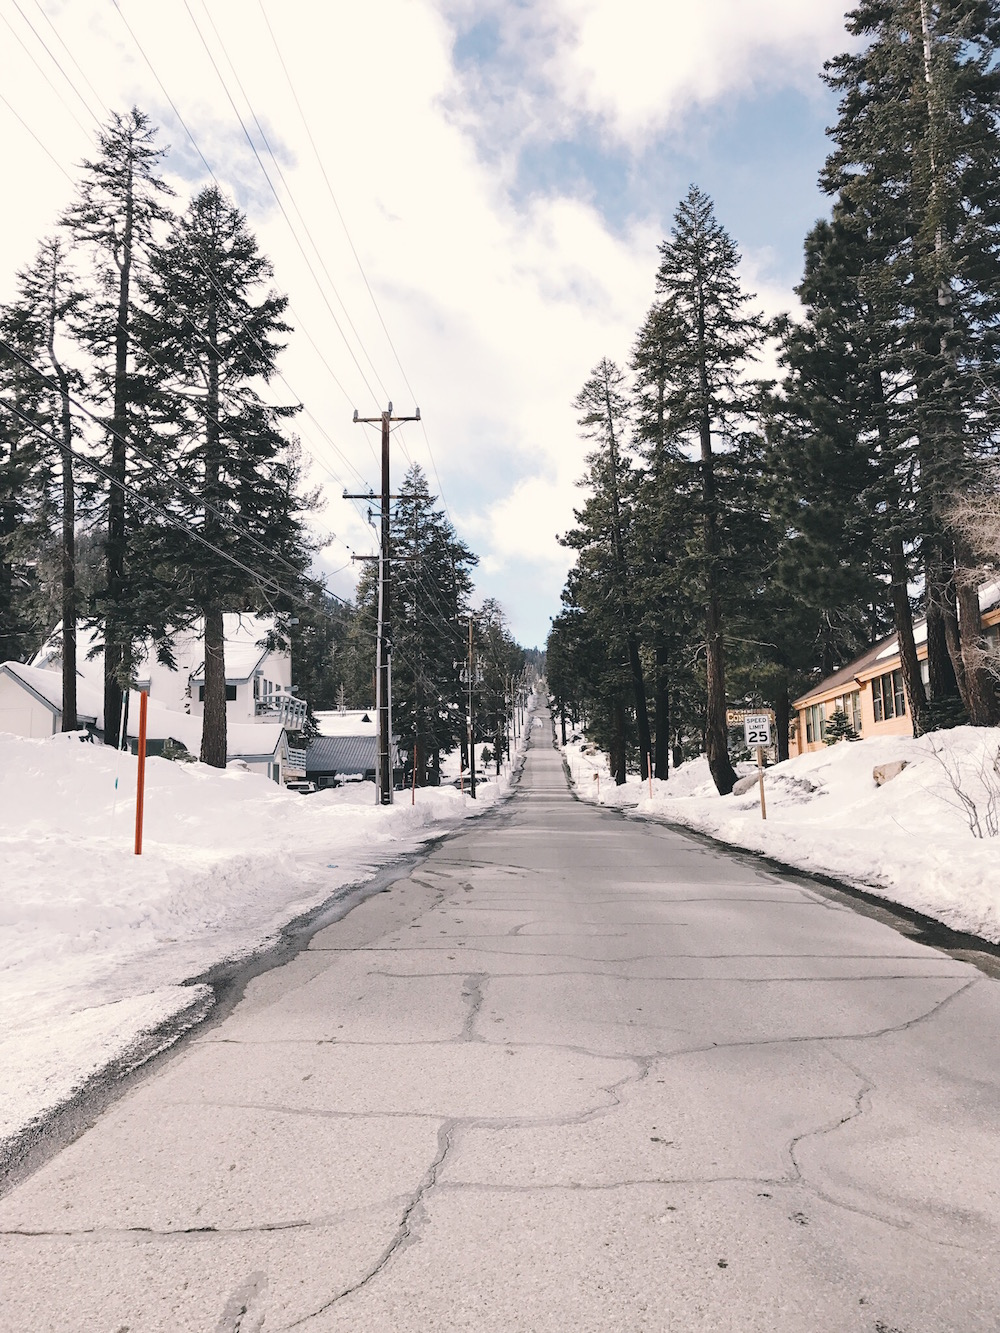 Tree-lined street with cabin condos in Mammoth